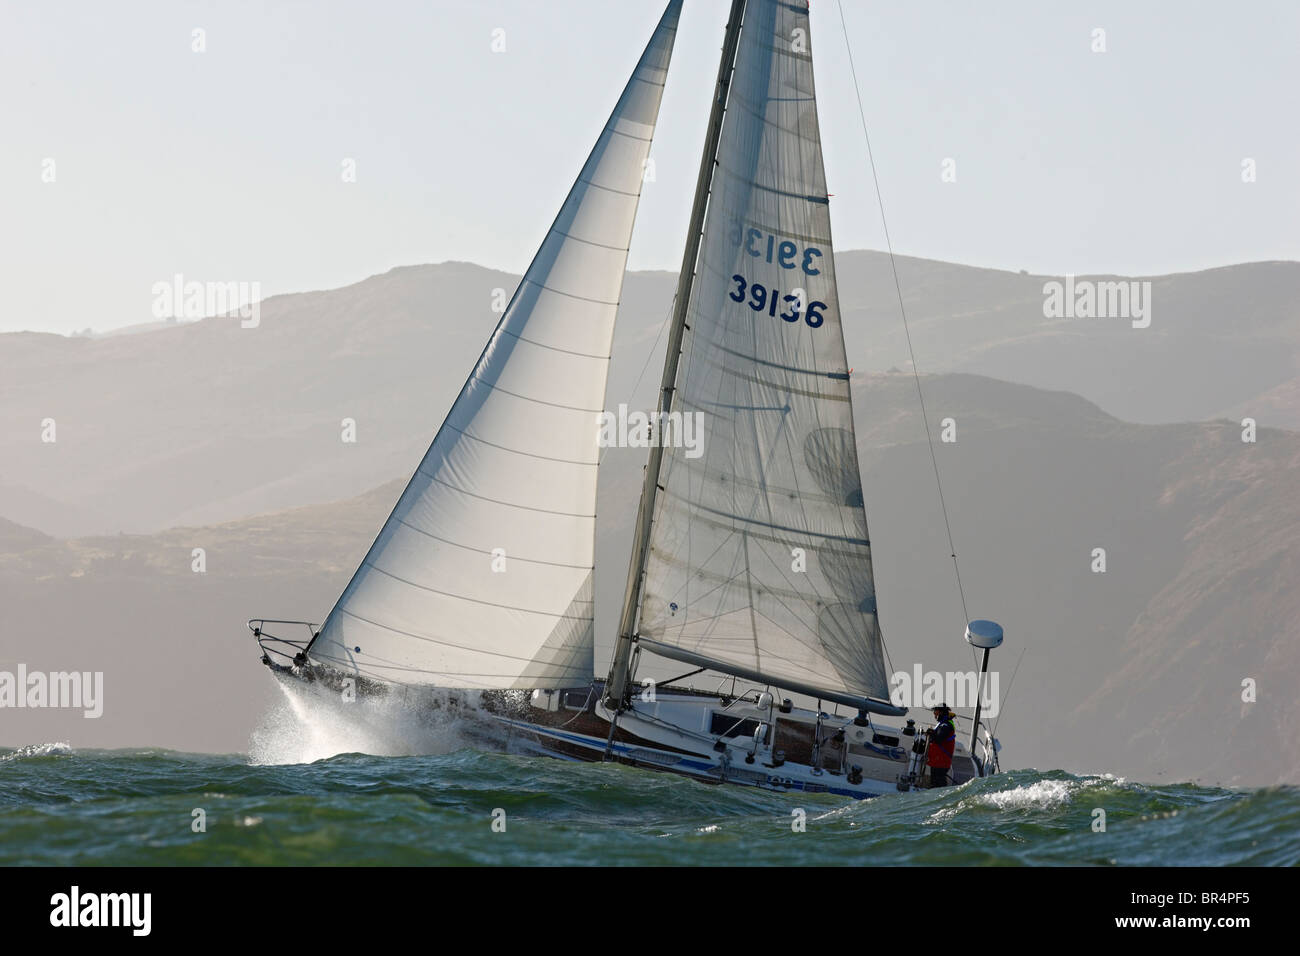 A sailor singlehands his 39-foot sailboat in heavy weather off the California coast. - Stock Image